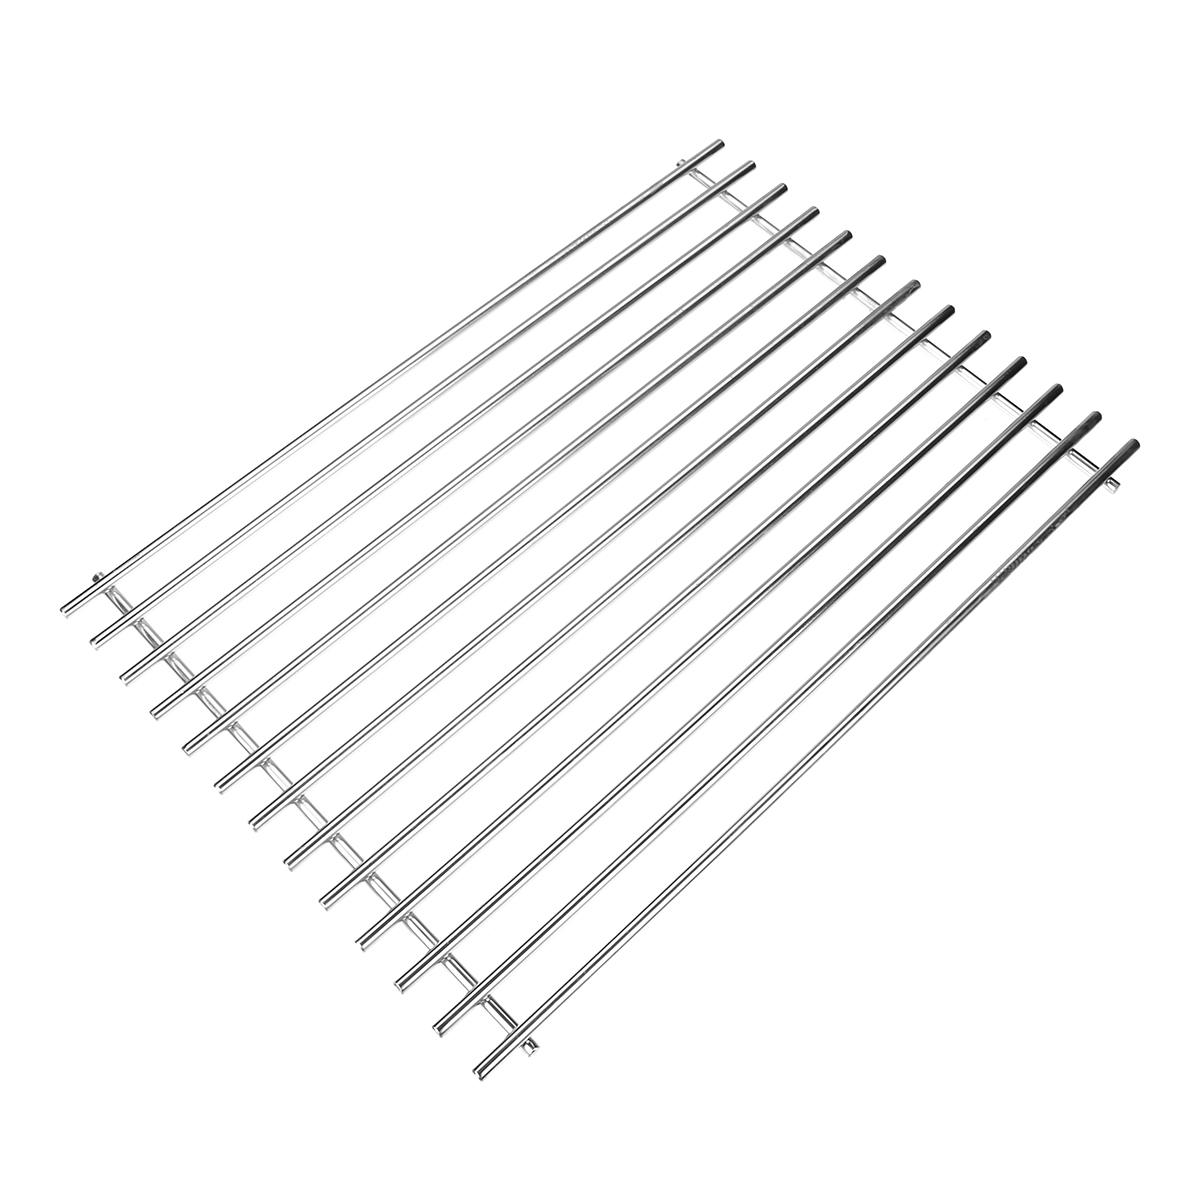 17 1 4 Gas Bbq Grill Stainless Steel Cooking Grid Grates